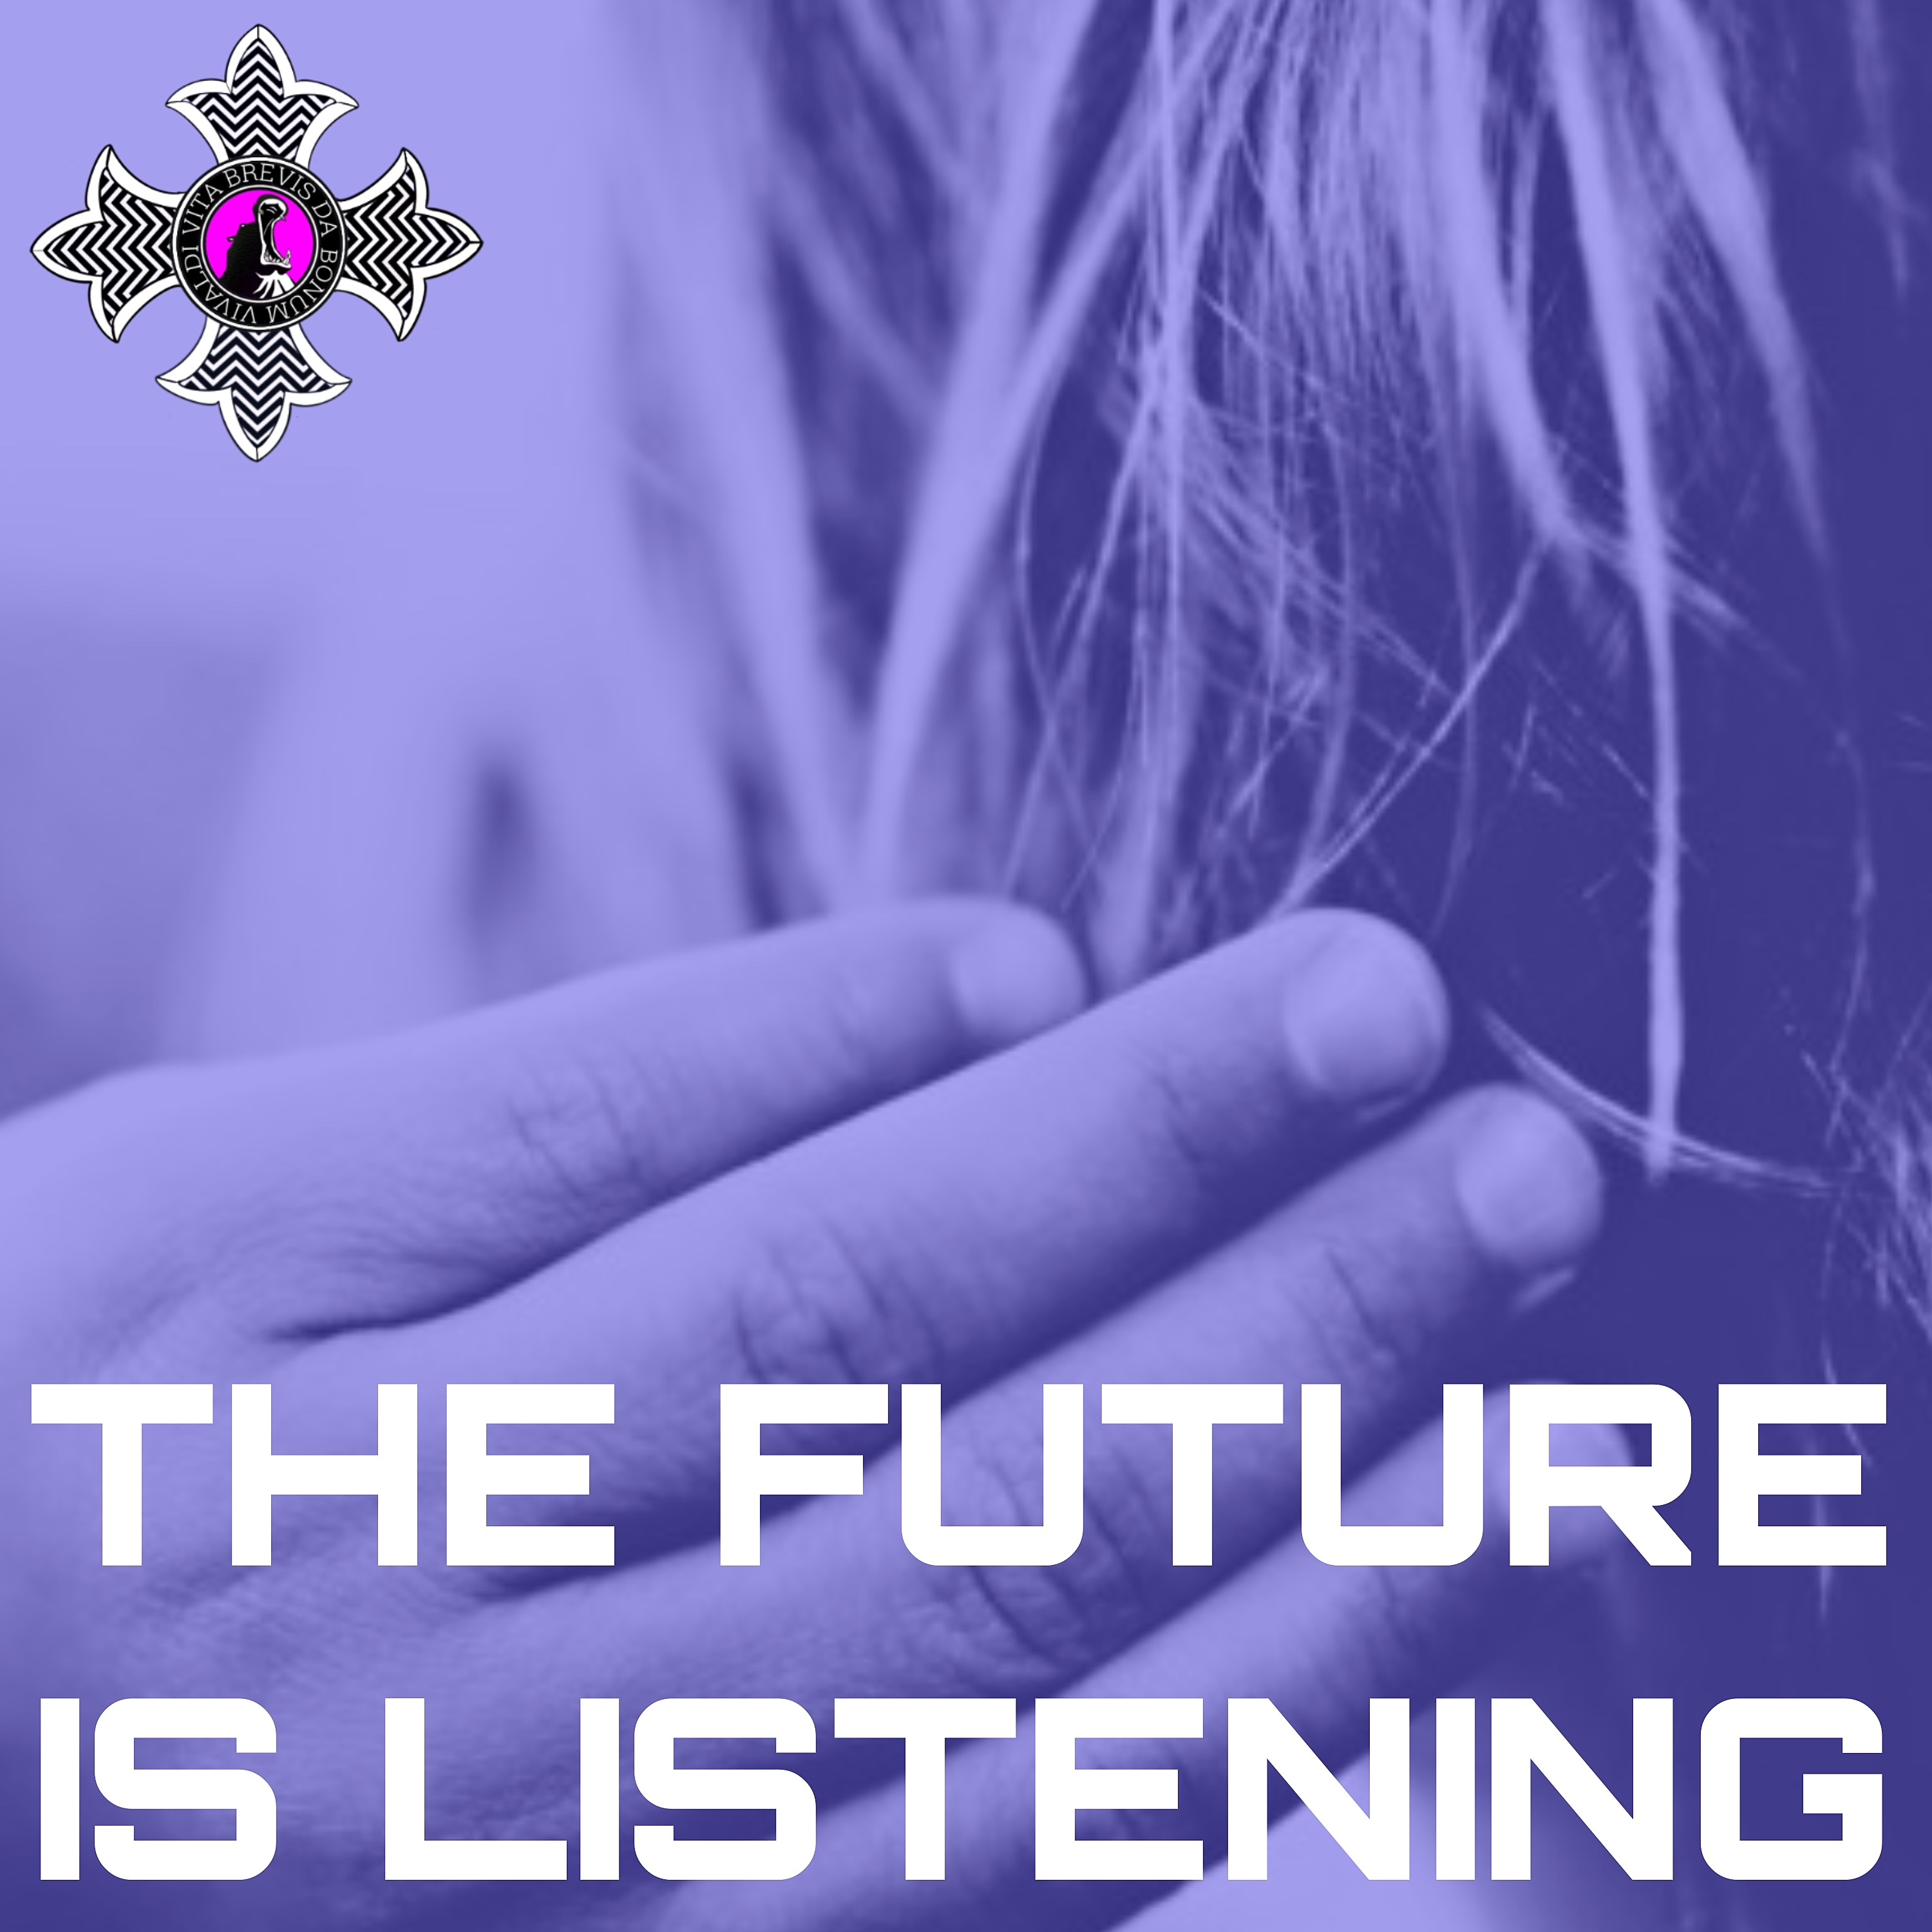 THE FUTURE IS LISTENING